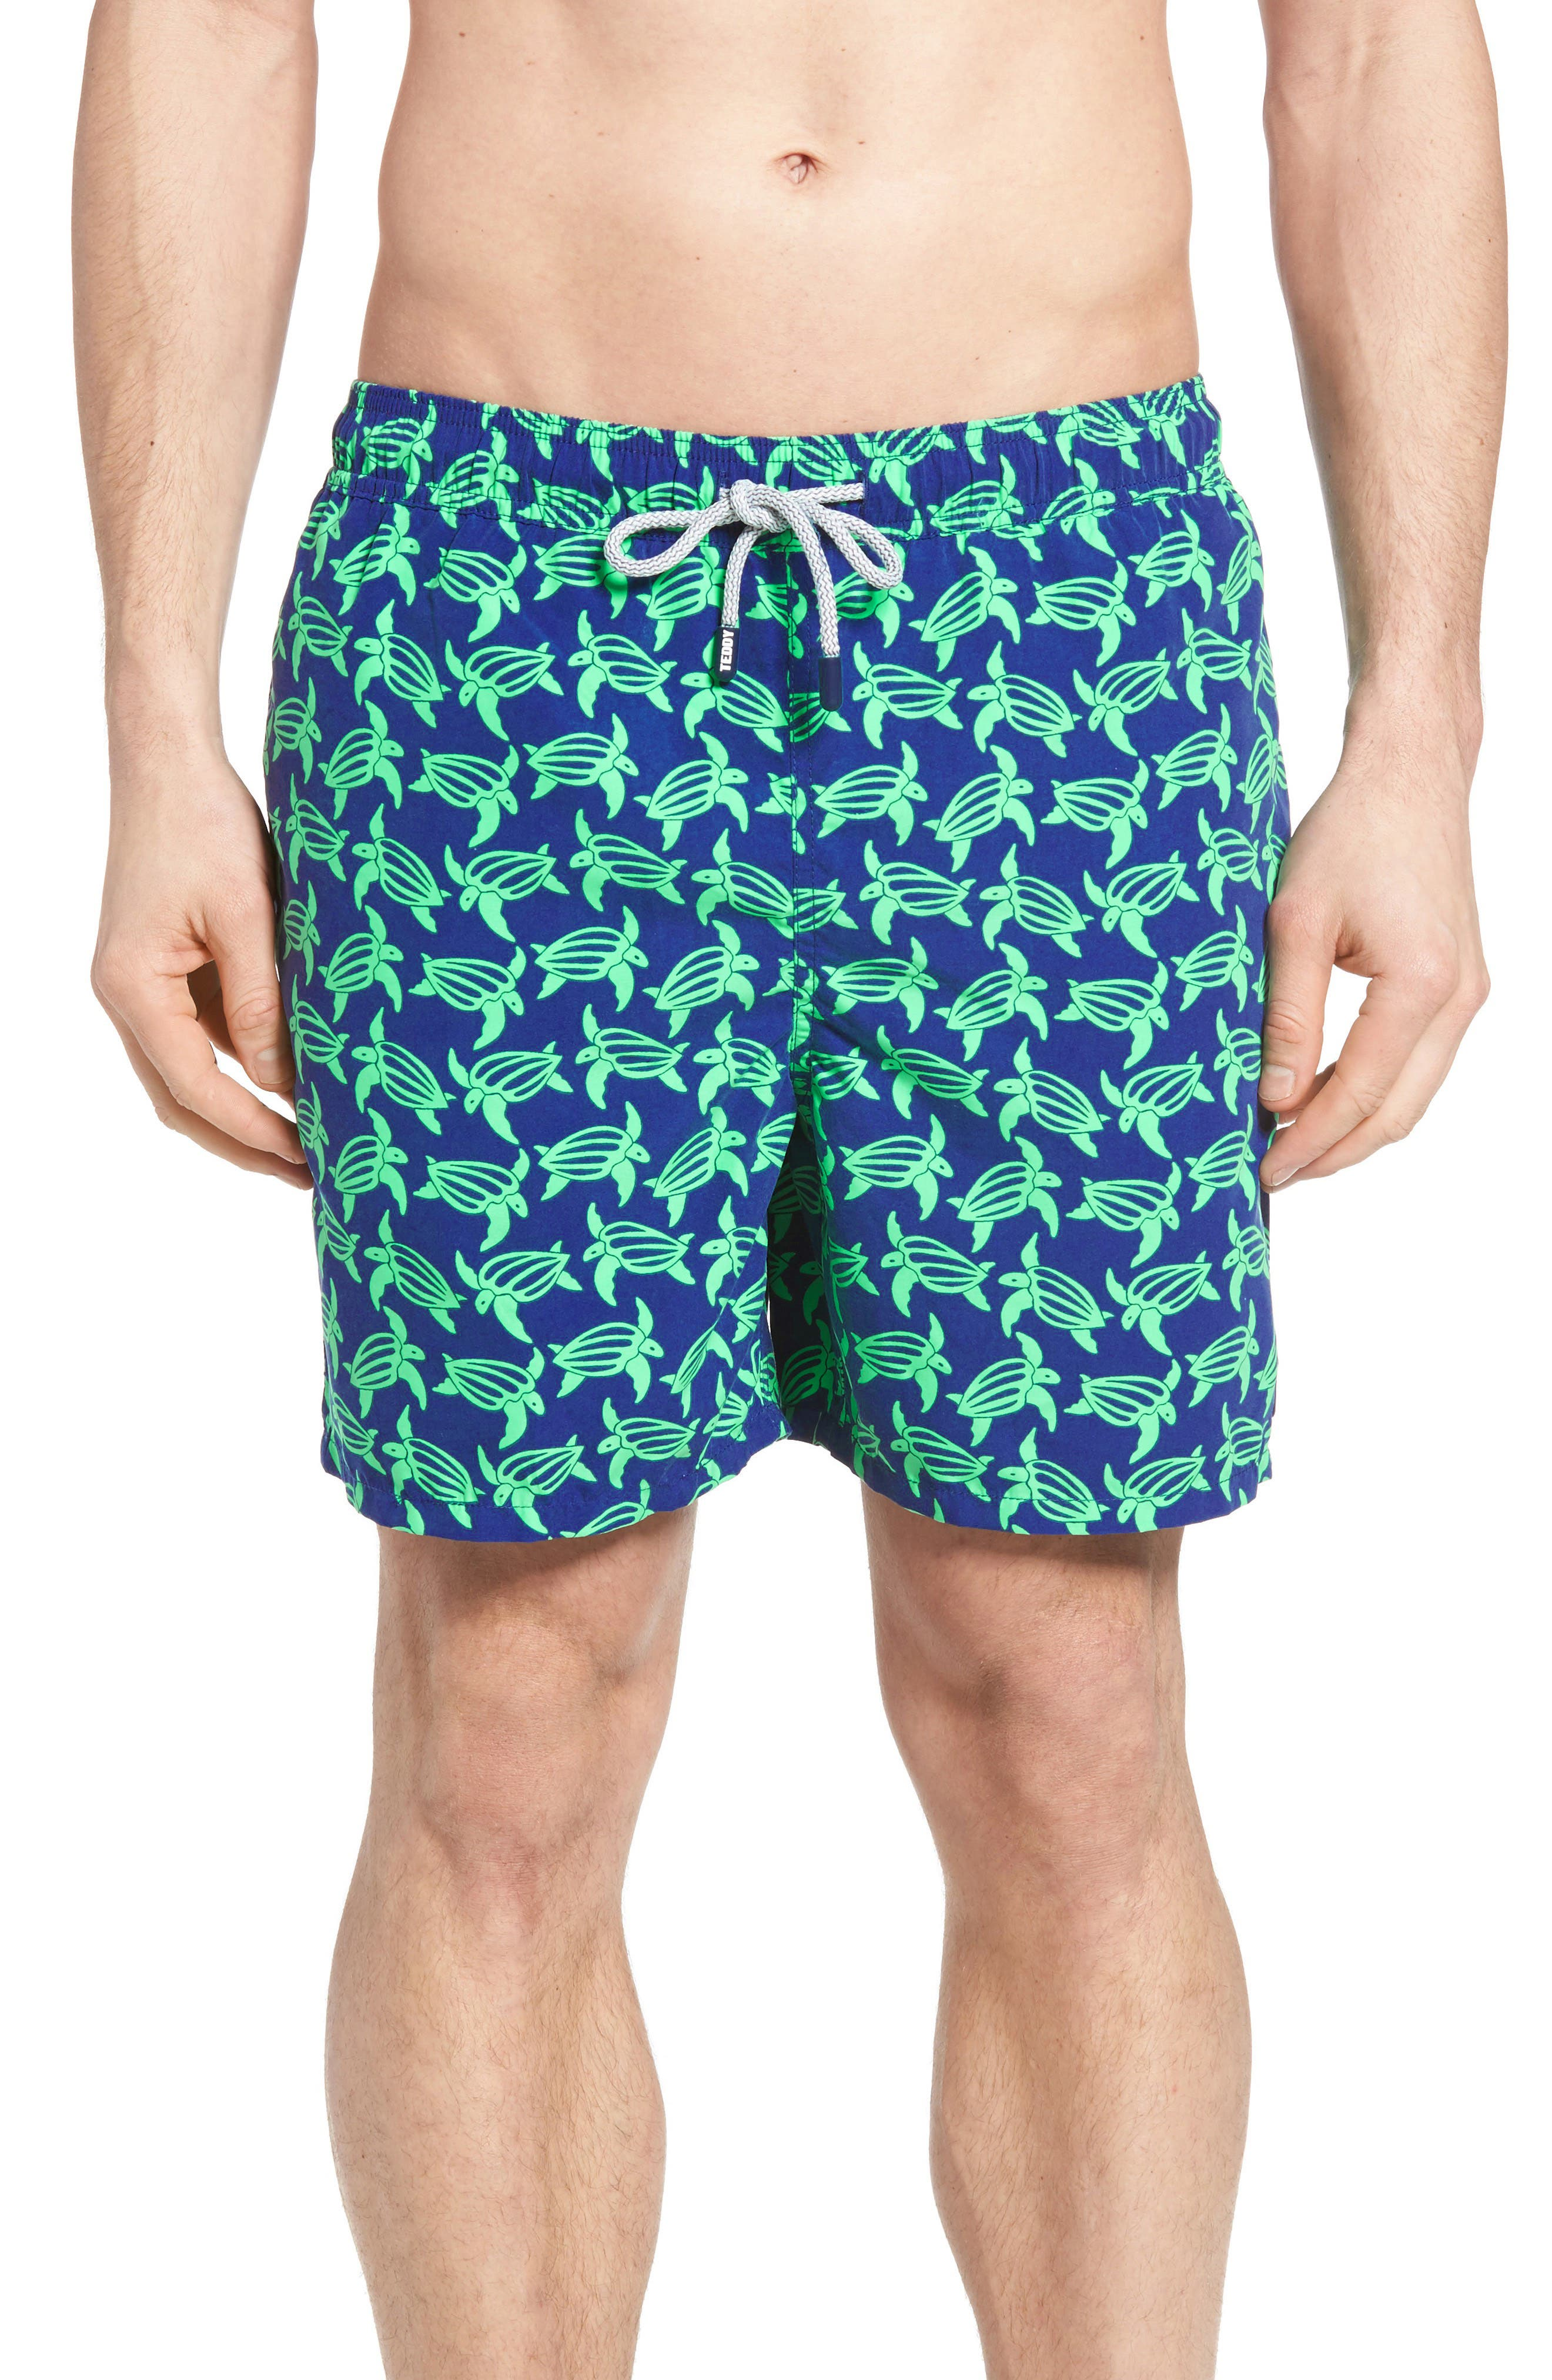 Turtle Print Swim Trunks,                         Main,                         color, NAVY GREEN